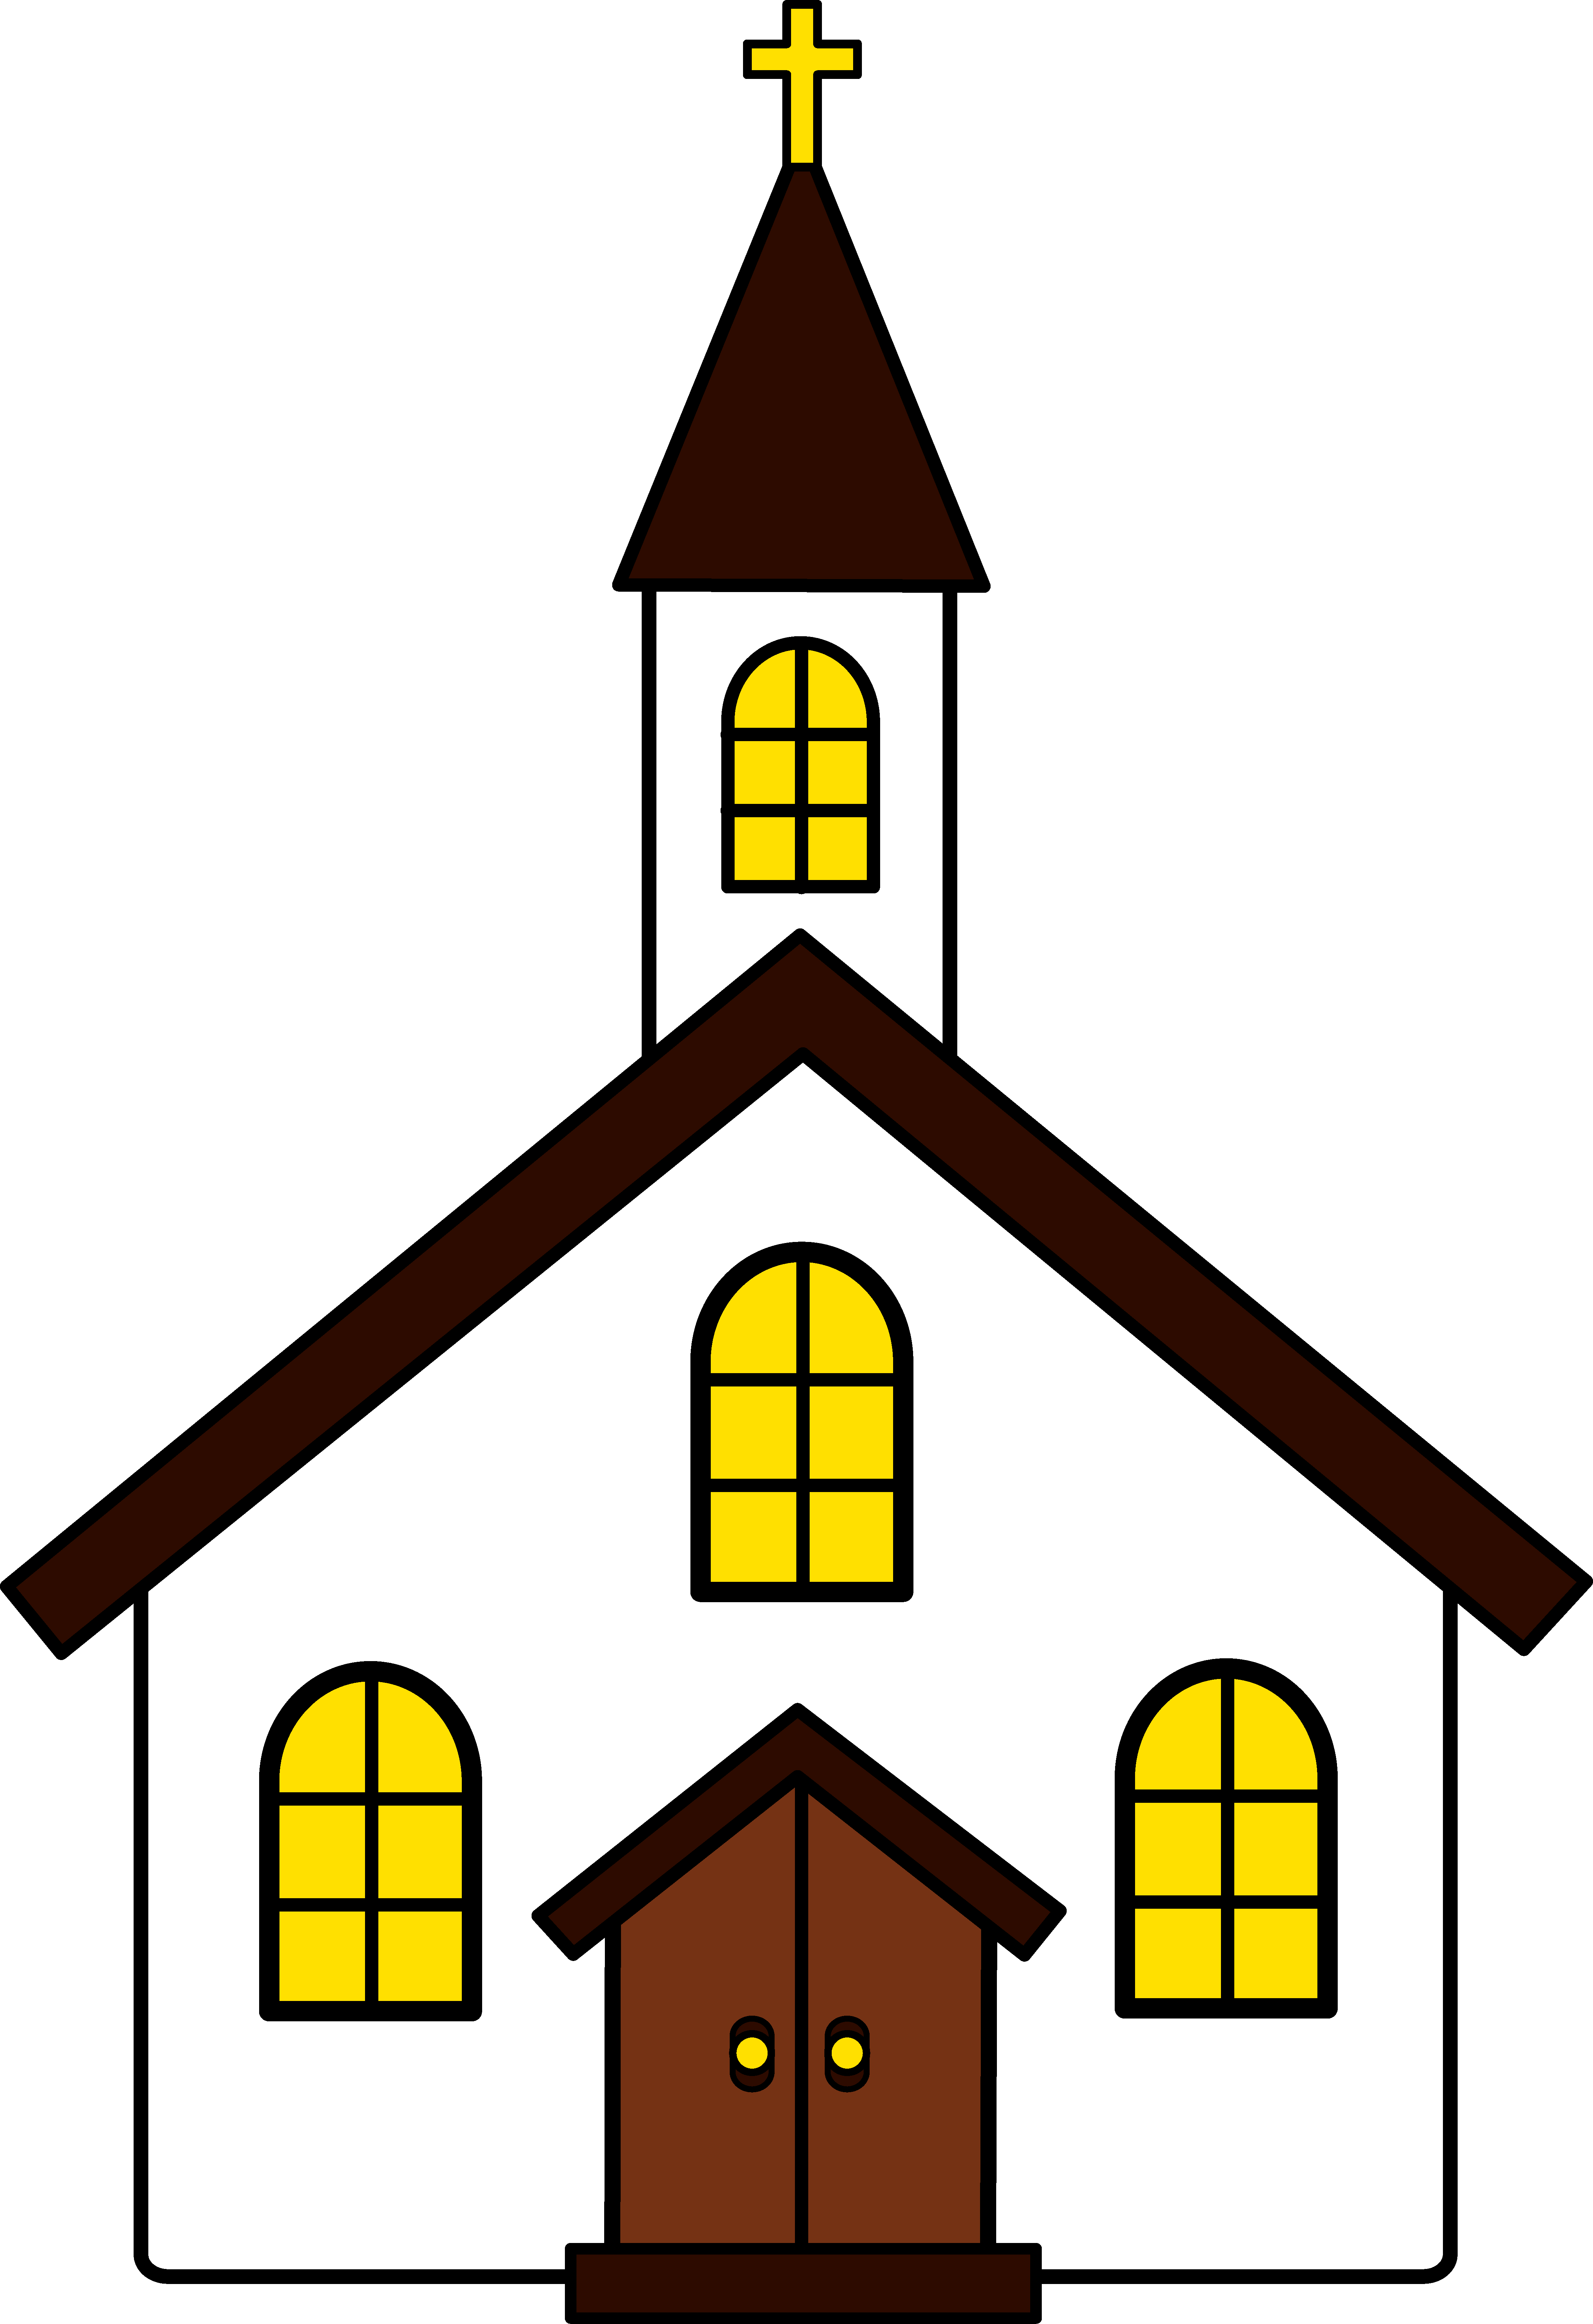 A divided house clipart clip art free stock Black Church Clip Art | Clipart Panda - Free Clipart Images clip art free stock